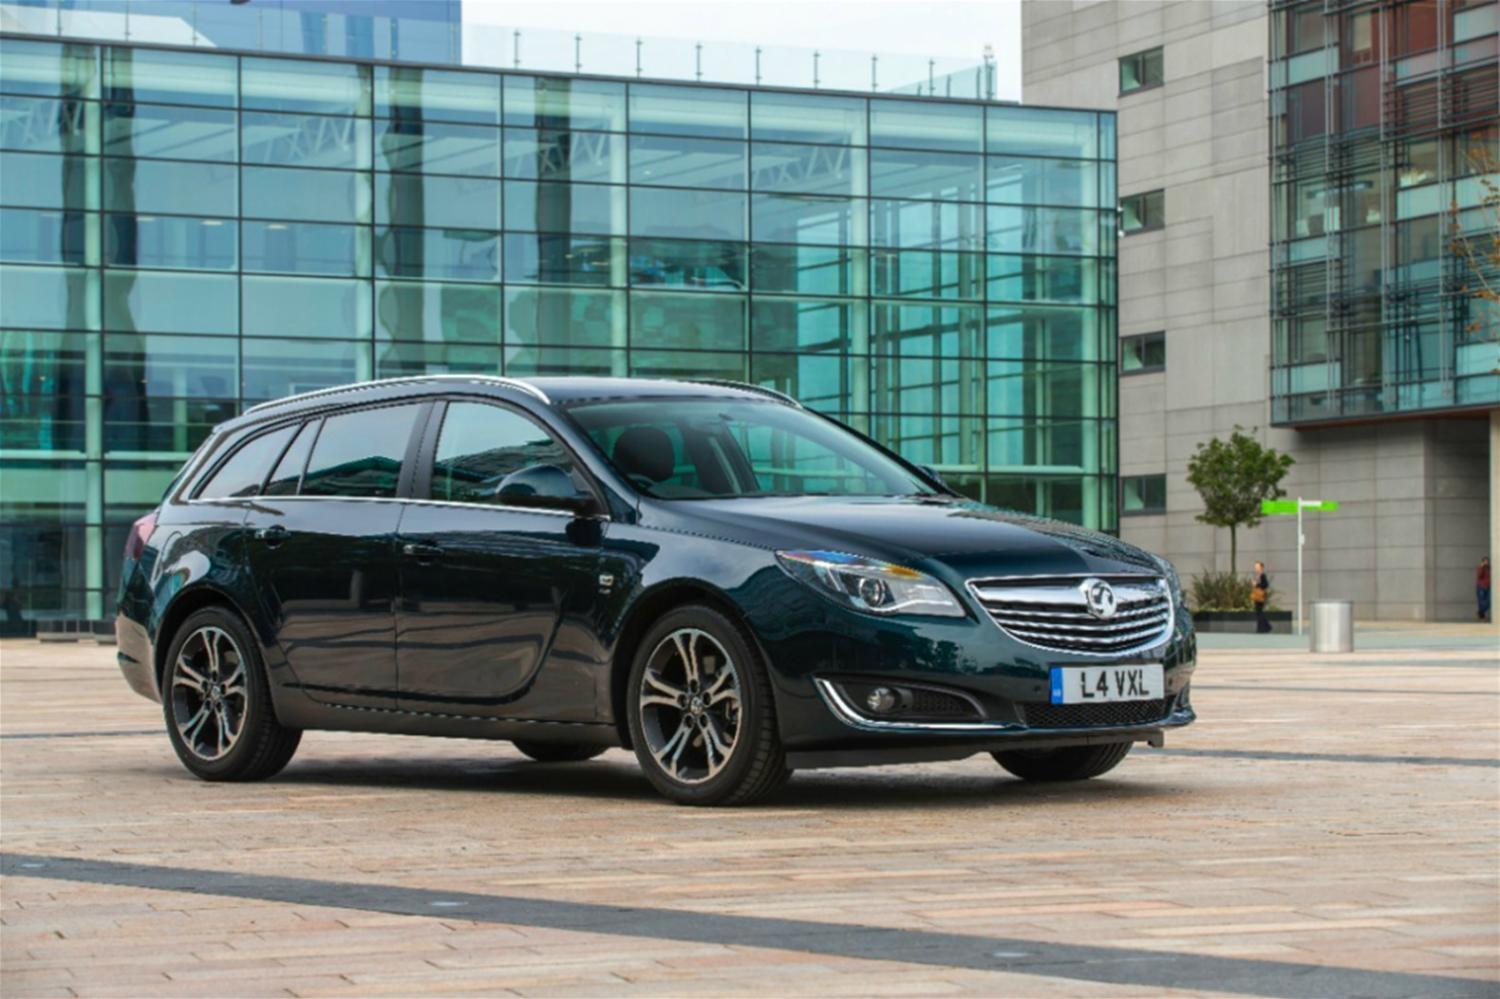 Vauxhall Insignia Sports Tourer (2013 On) Review